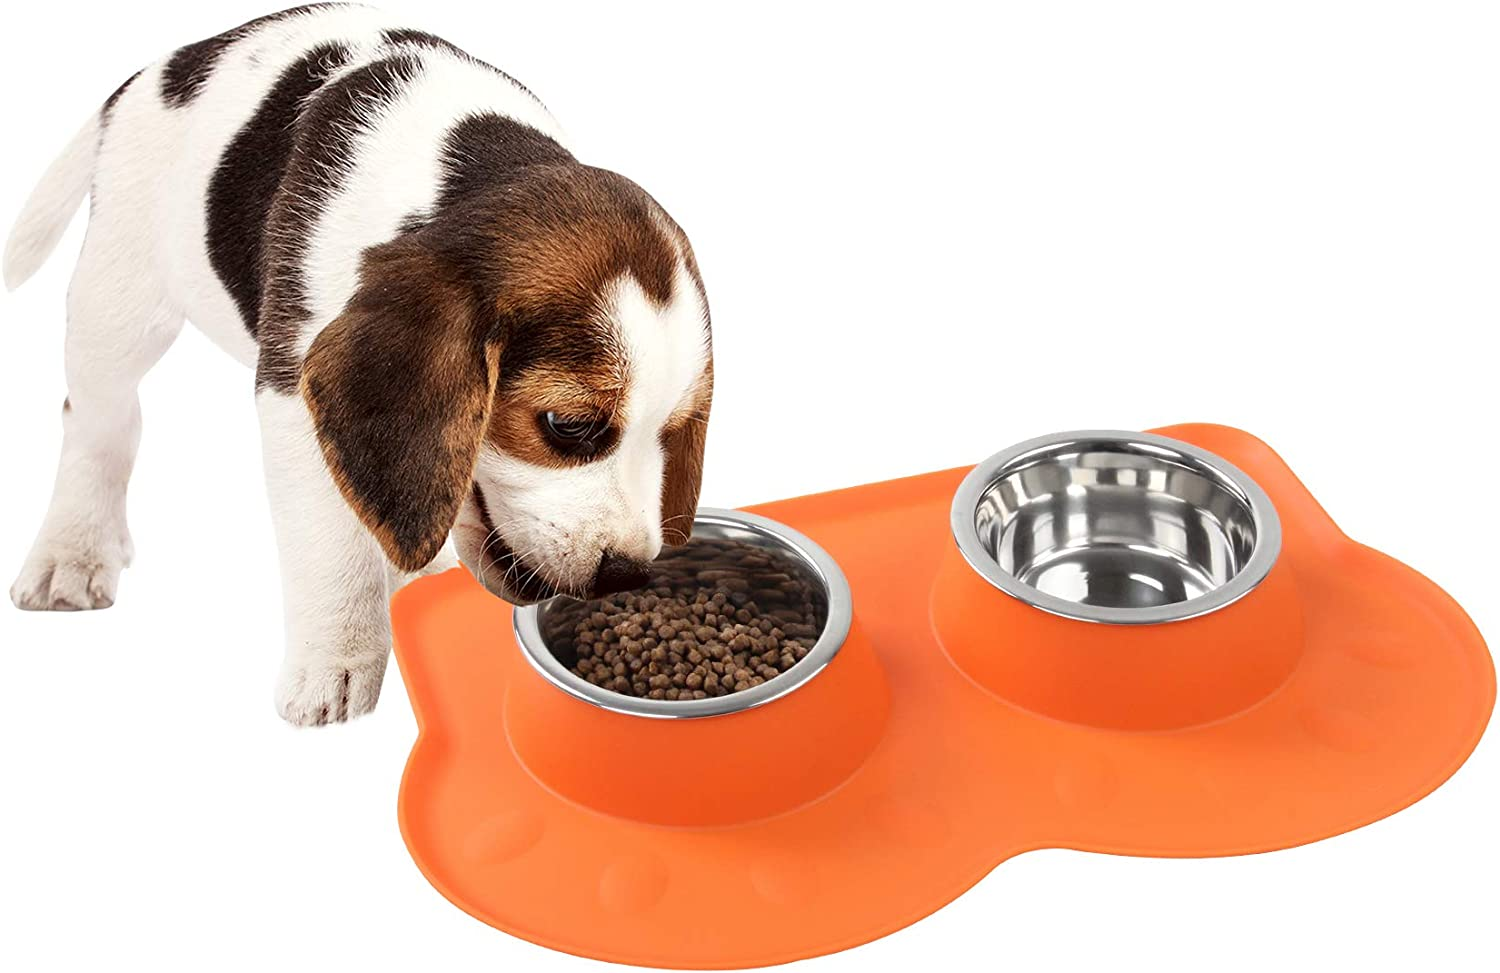 Pet Food and Water Bowls with 2 Stainless Steel Bowl & No Spill Non-Skid Silicone Mat Dog Double Feeding Bowl (350ml x 2)